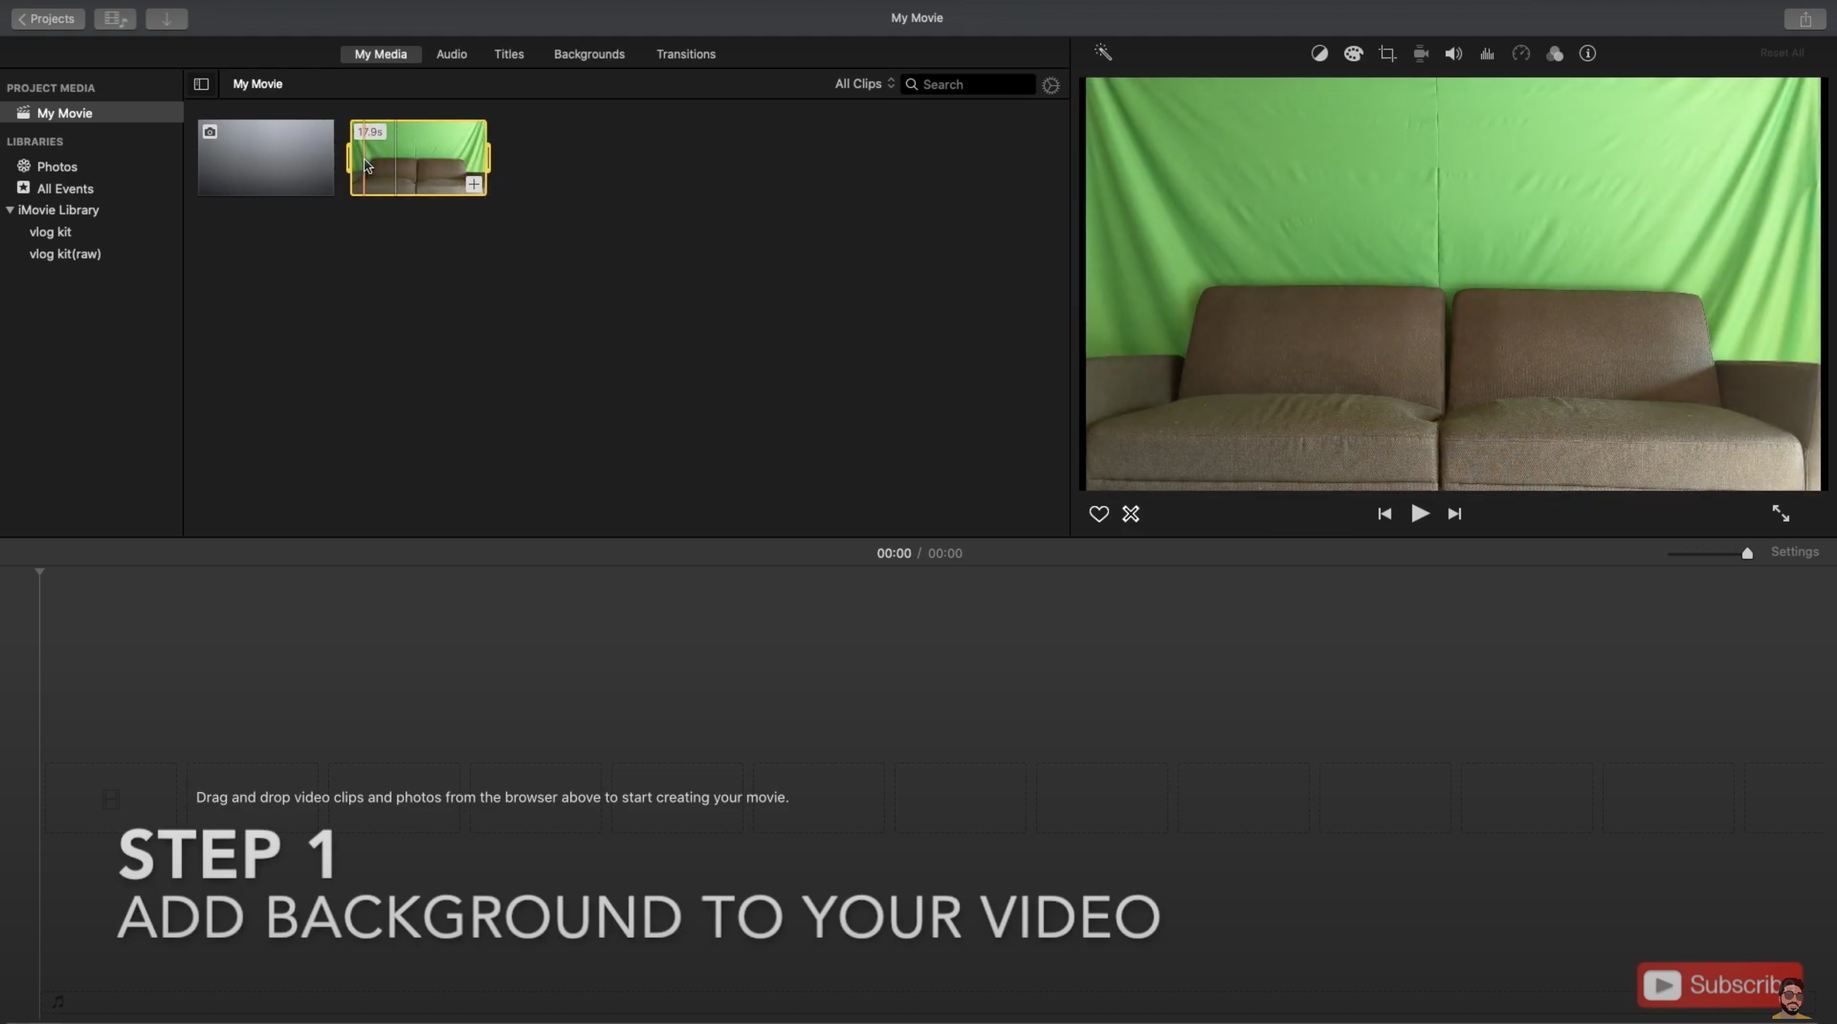 Add Background to Your Video